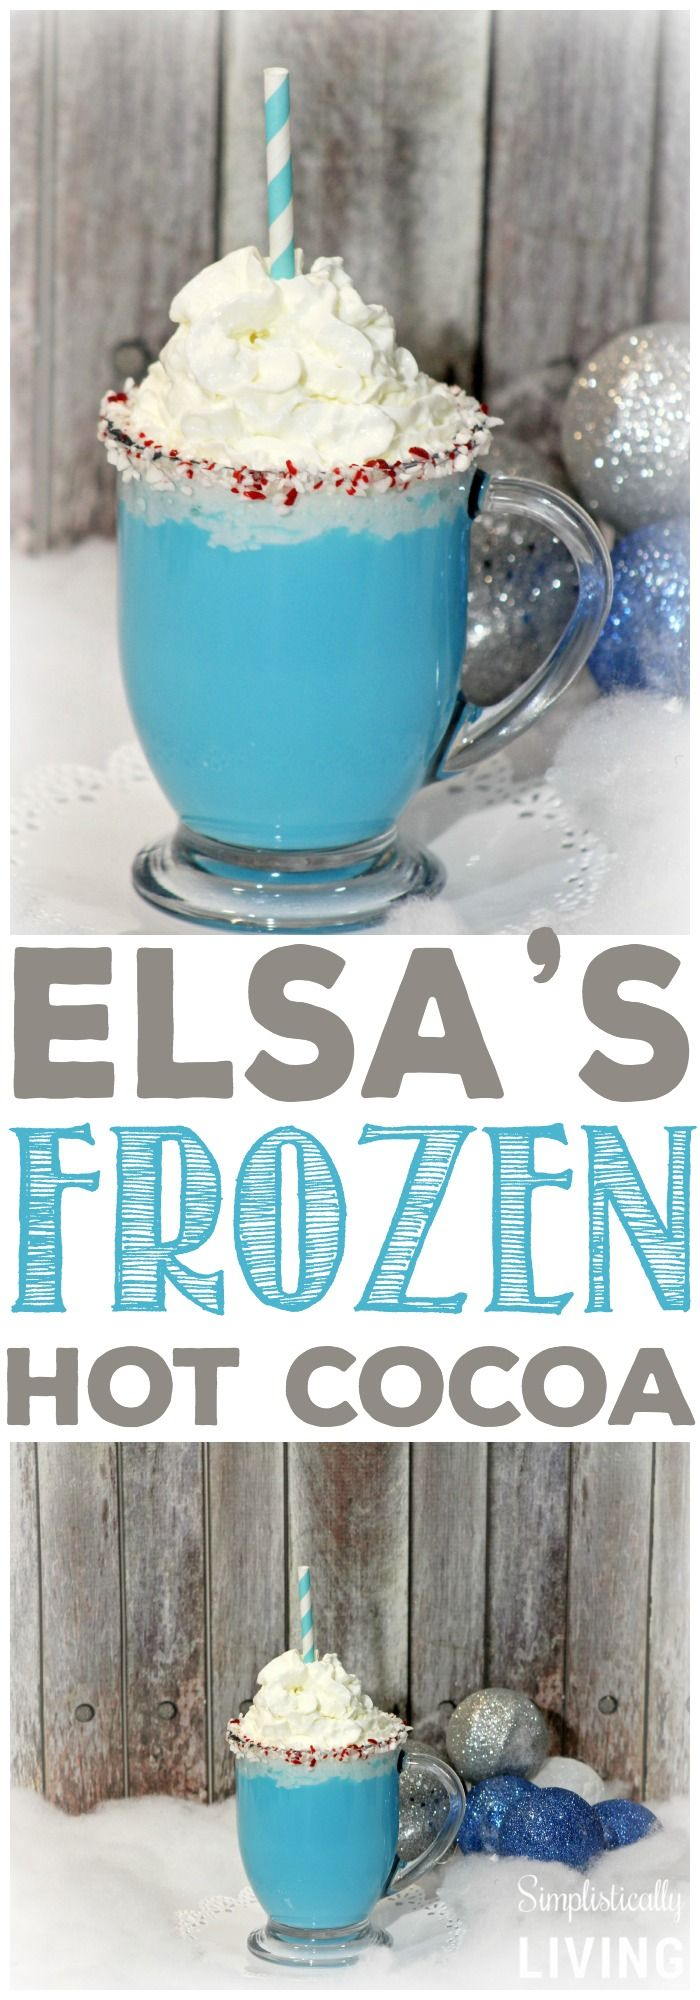 Elsa's Frozen Hot Cocoa Simplistically Living